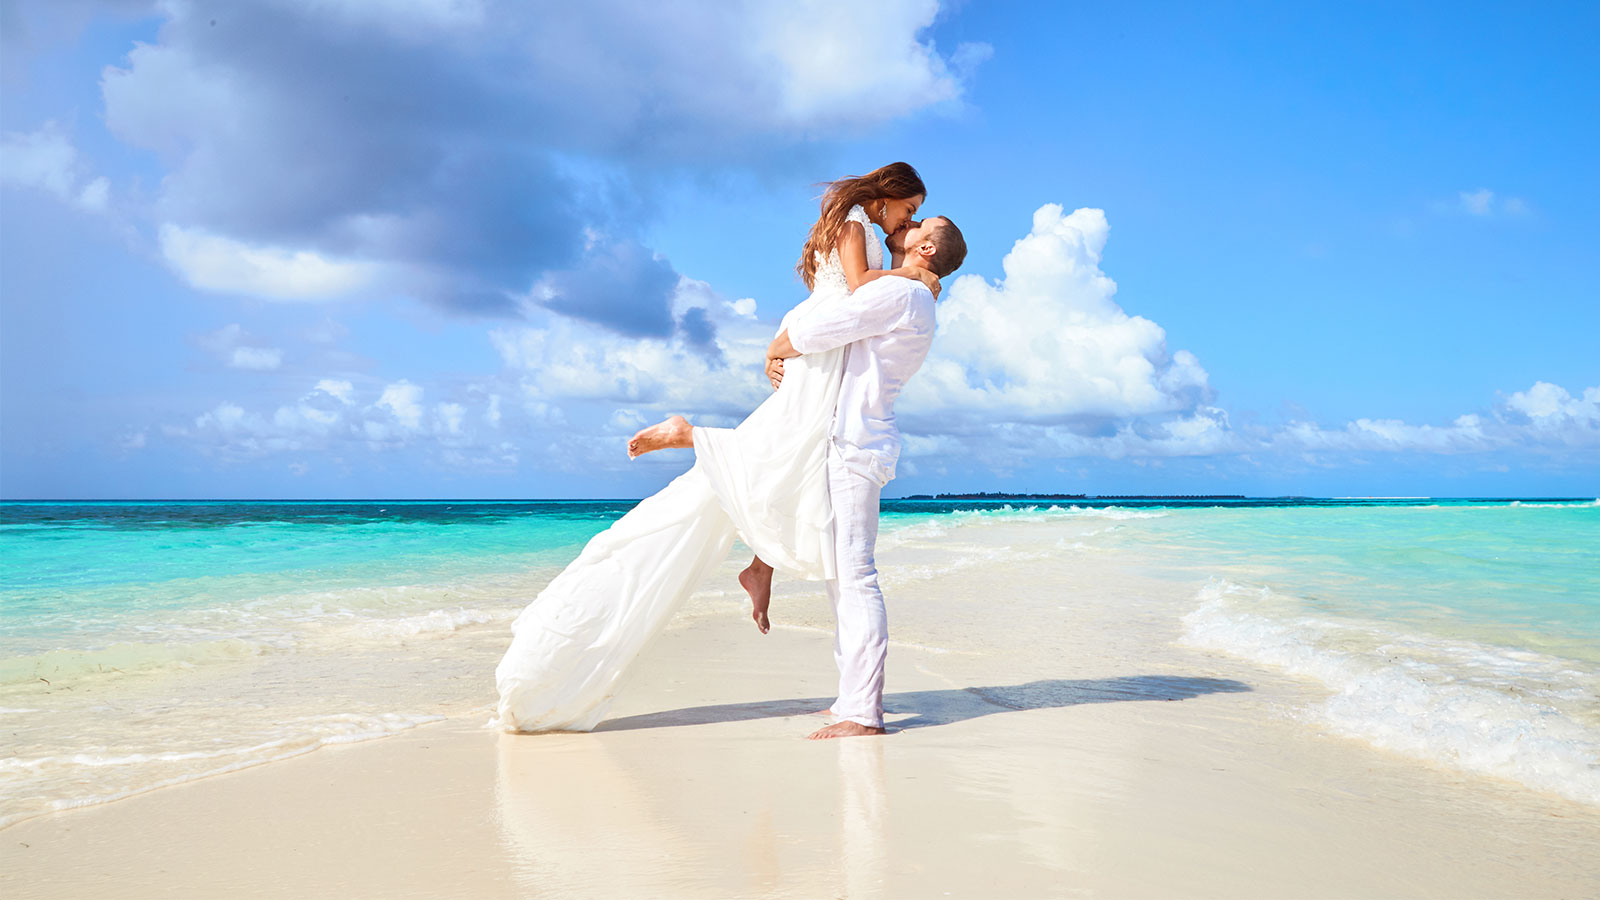 A Maldives Wedding - All You Need To Know - The Maldives Expert